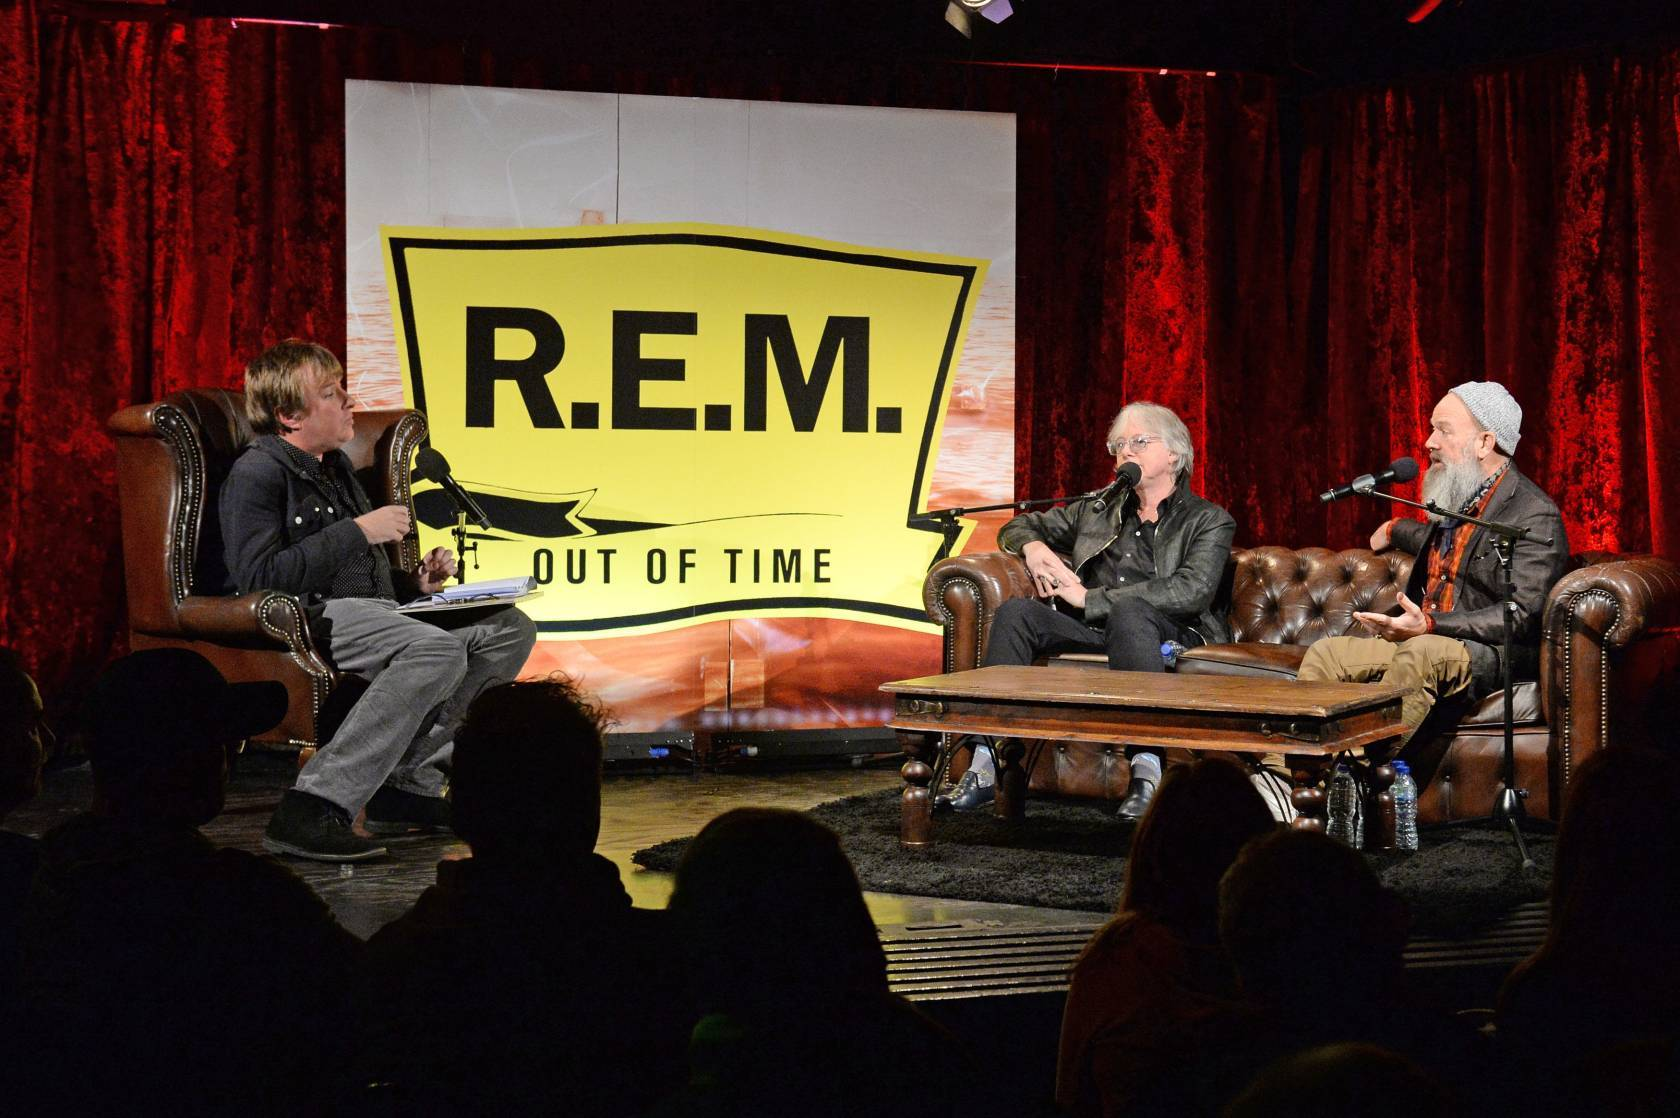 Mike Mills (centre) and Michael Stipe of R.E.M take part in a Q&A session at The Borderline in Soho, London, as they celebrate the 25th anniversary of their landmark album Out of Time.